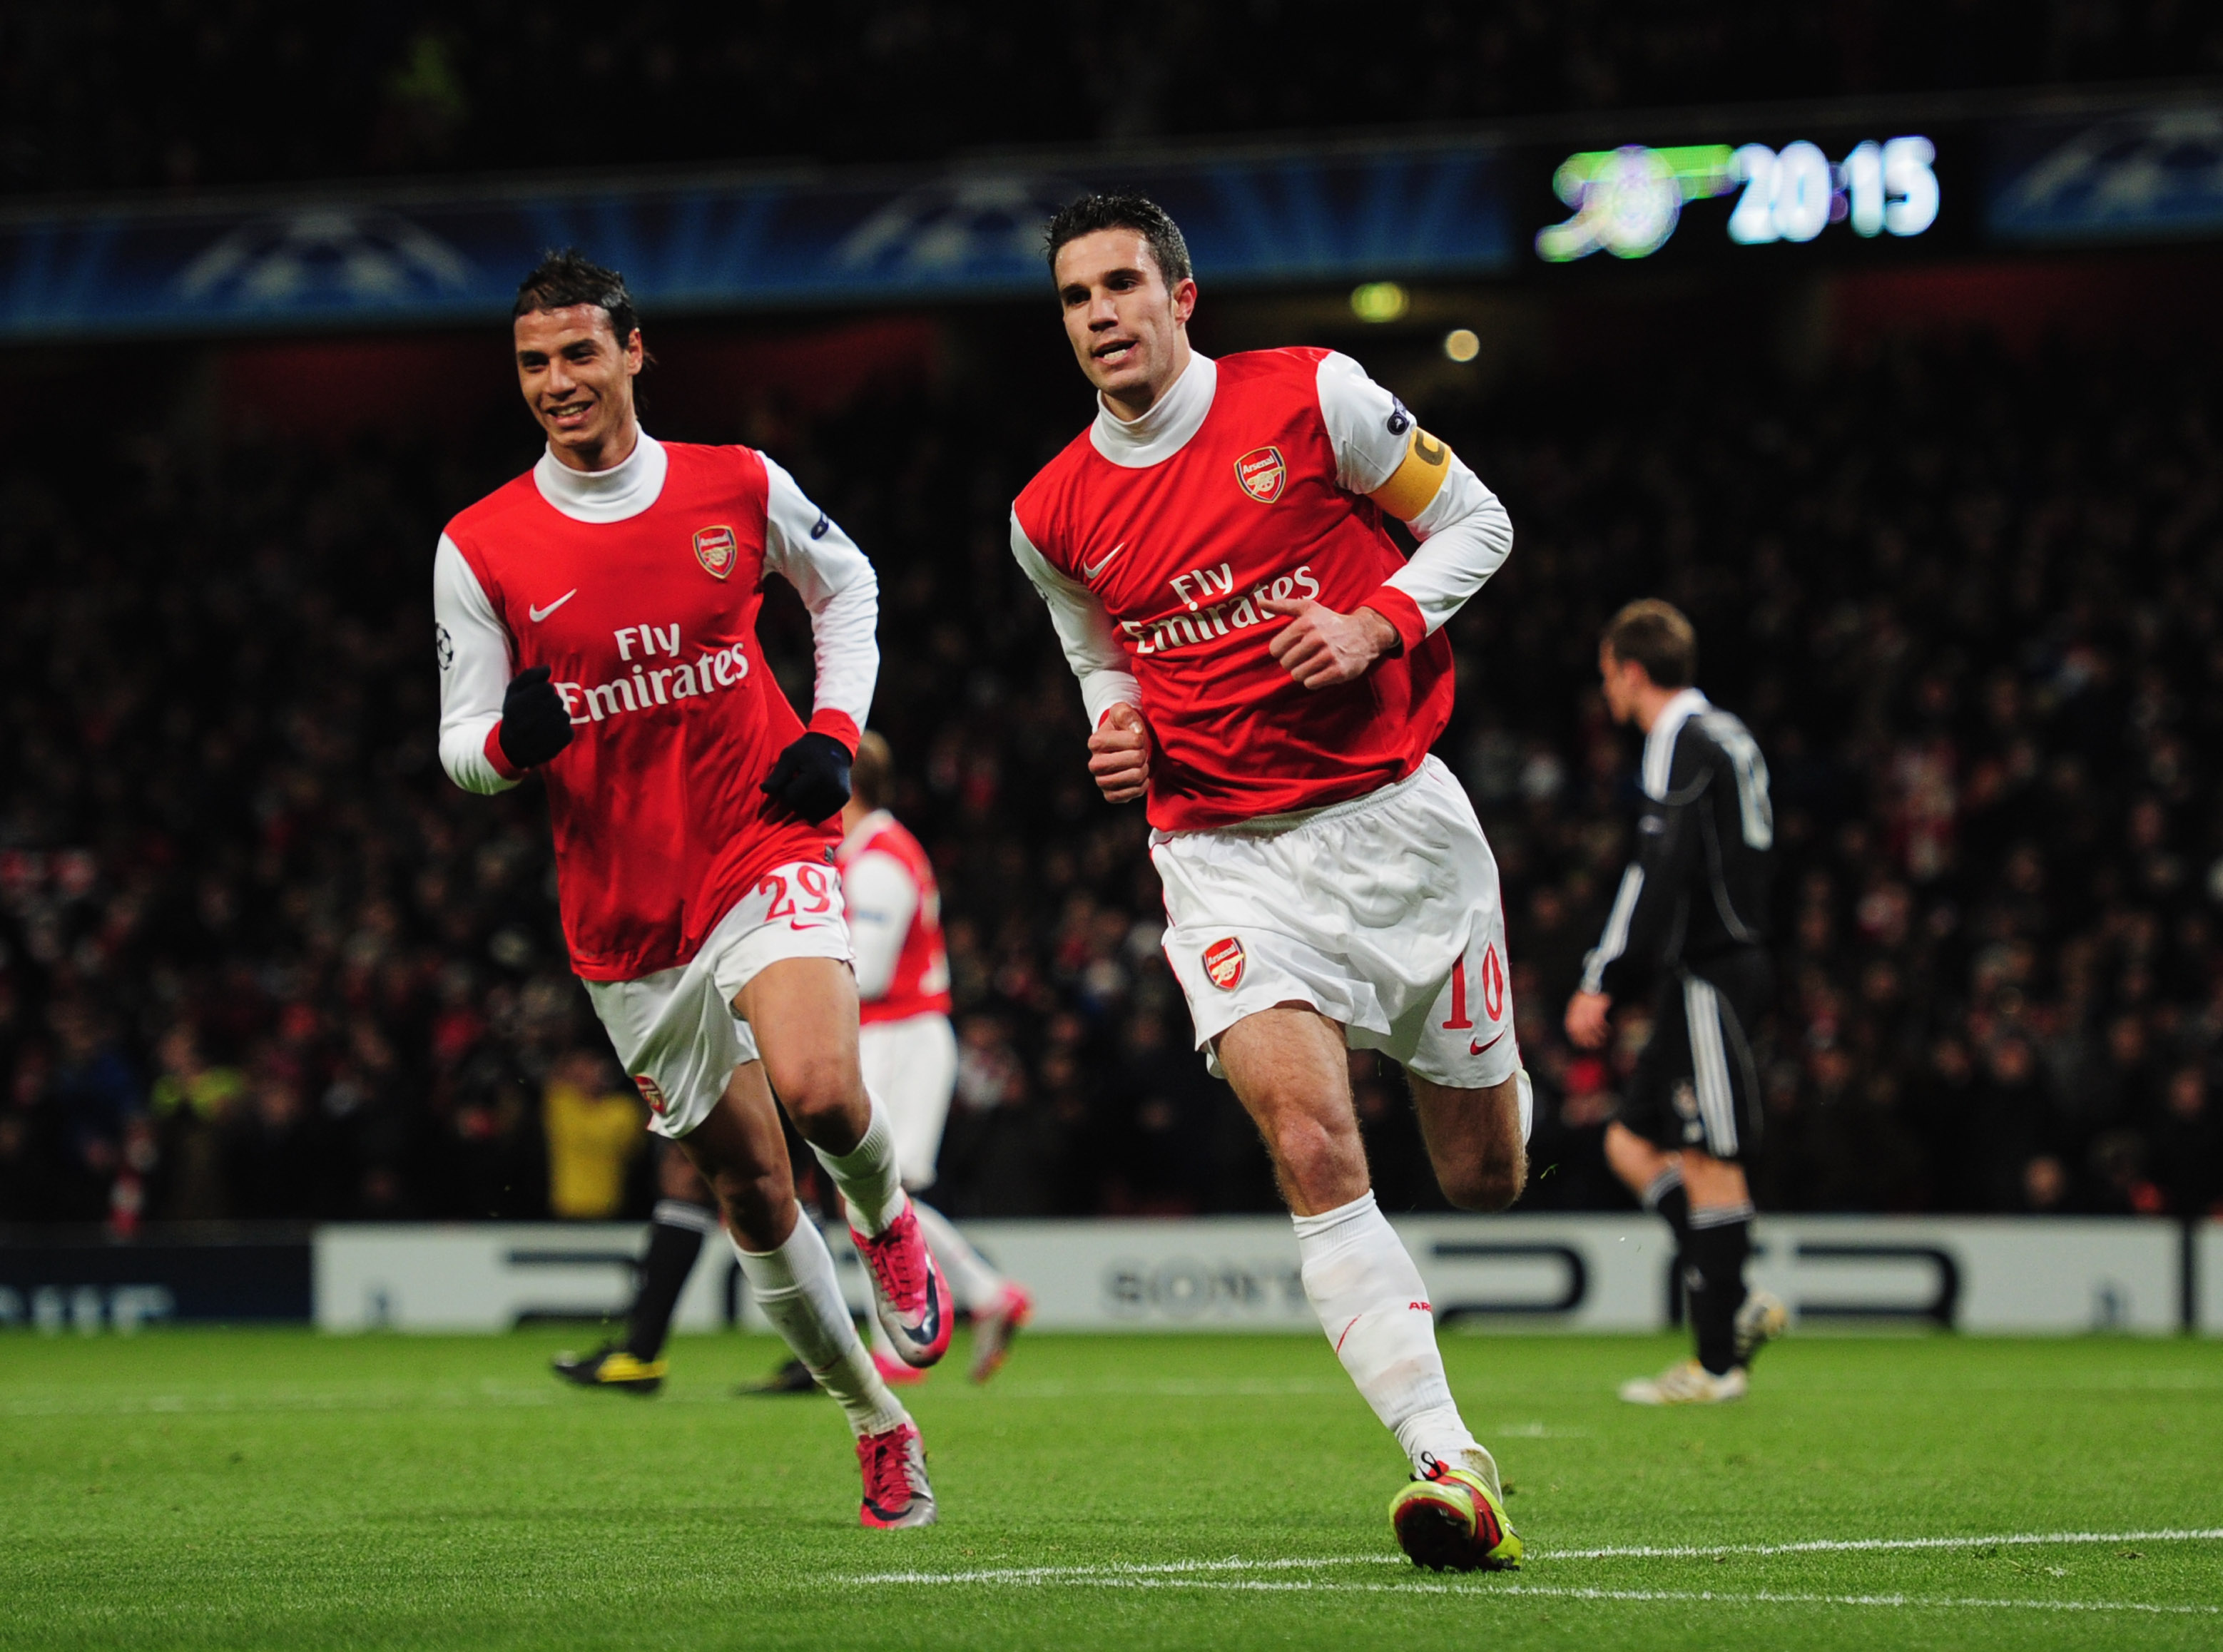 LONDON, ENGLAND - DECEMBER 08:  Robin van Persie of Arsenal celebrates with Marouane Chamakh (L) as he scores their first goal from the penalty spot during the UEFA Champions League Group H match between Arsenal and FK Partizan Belgrade at the Emirates St